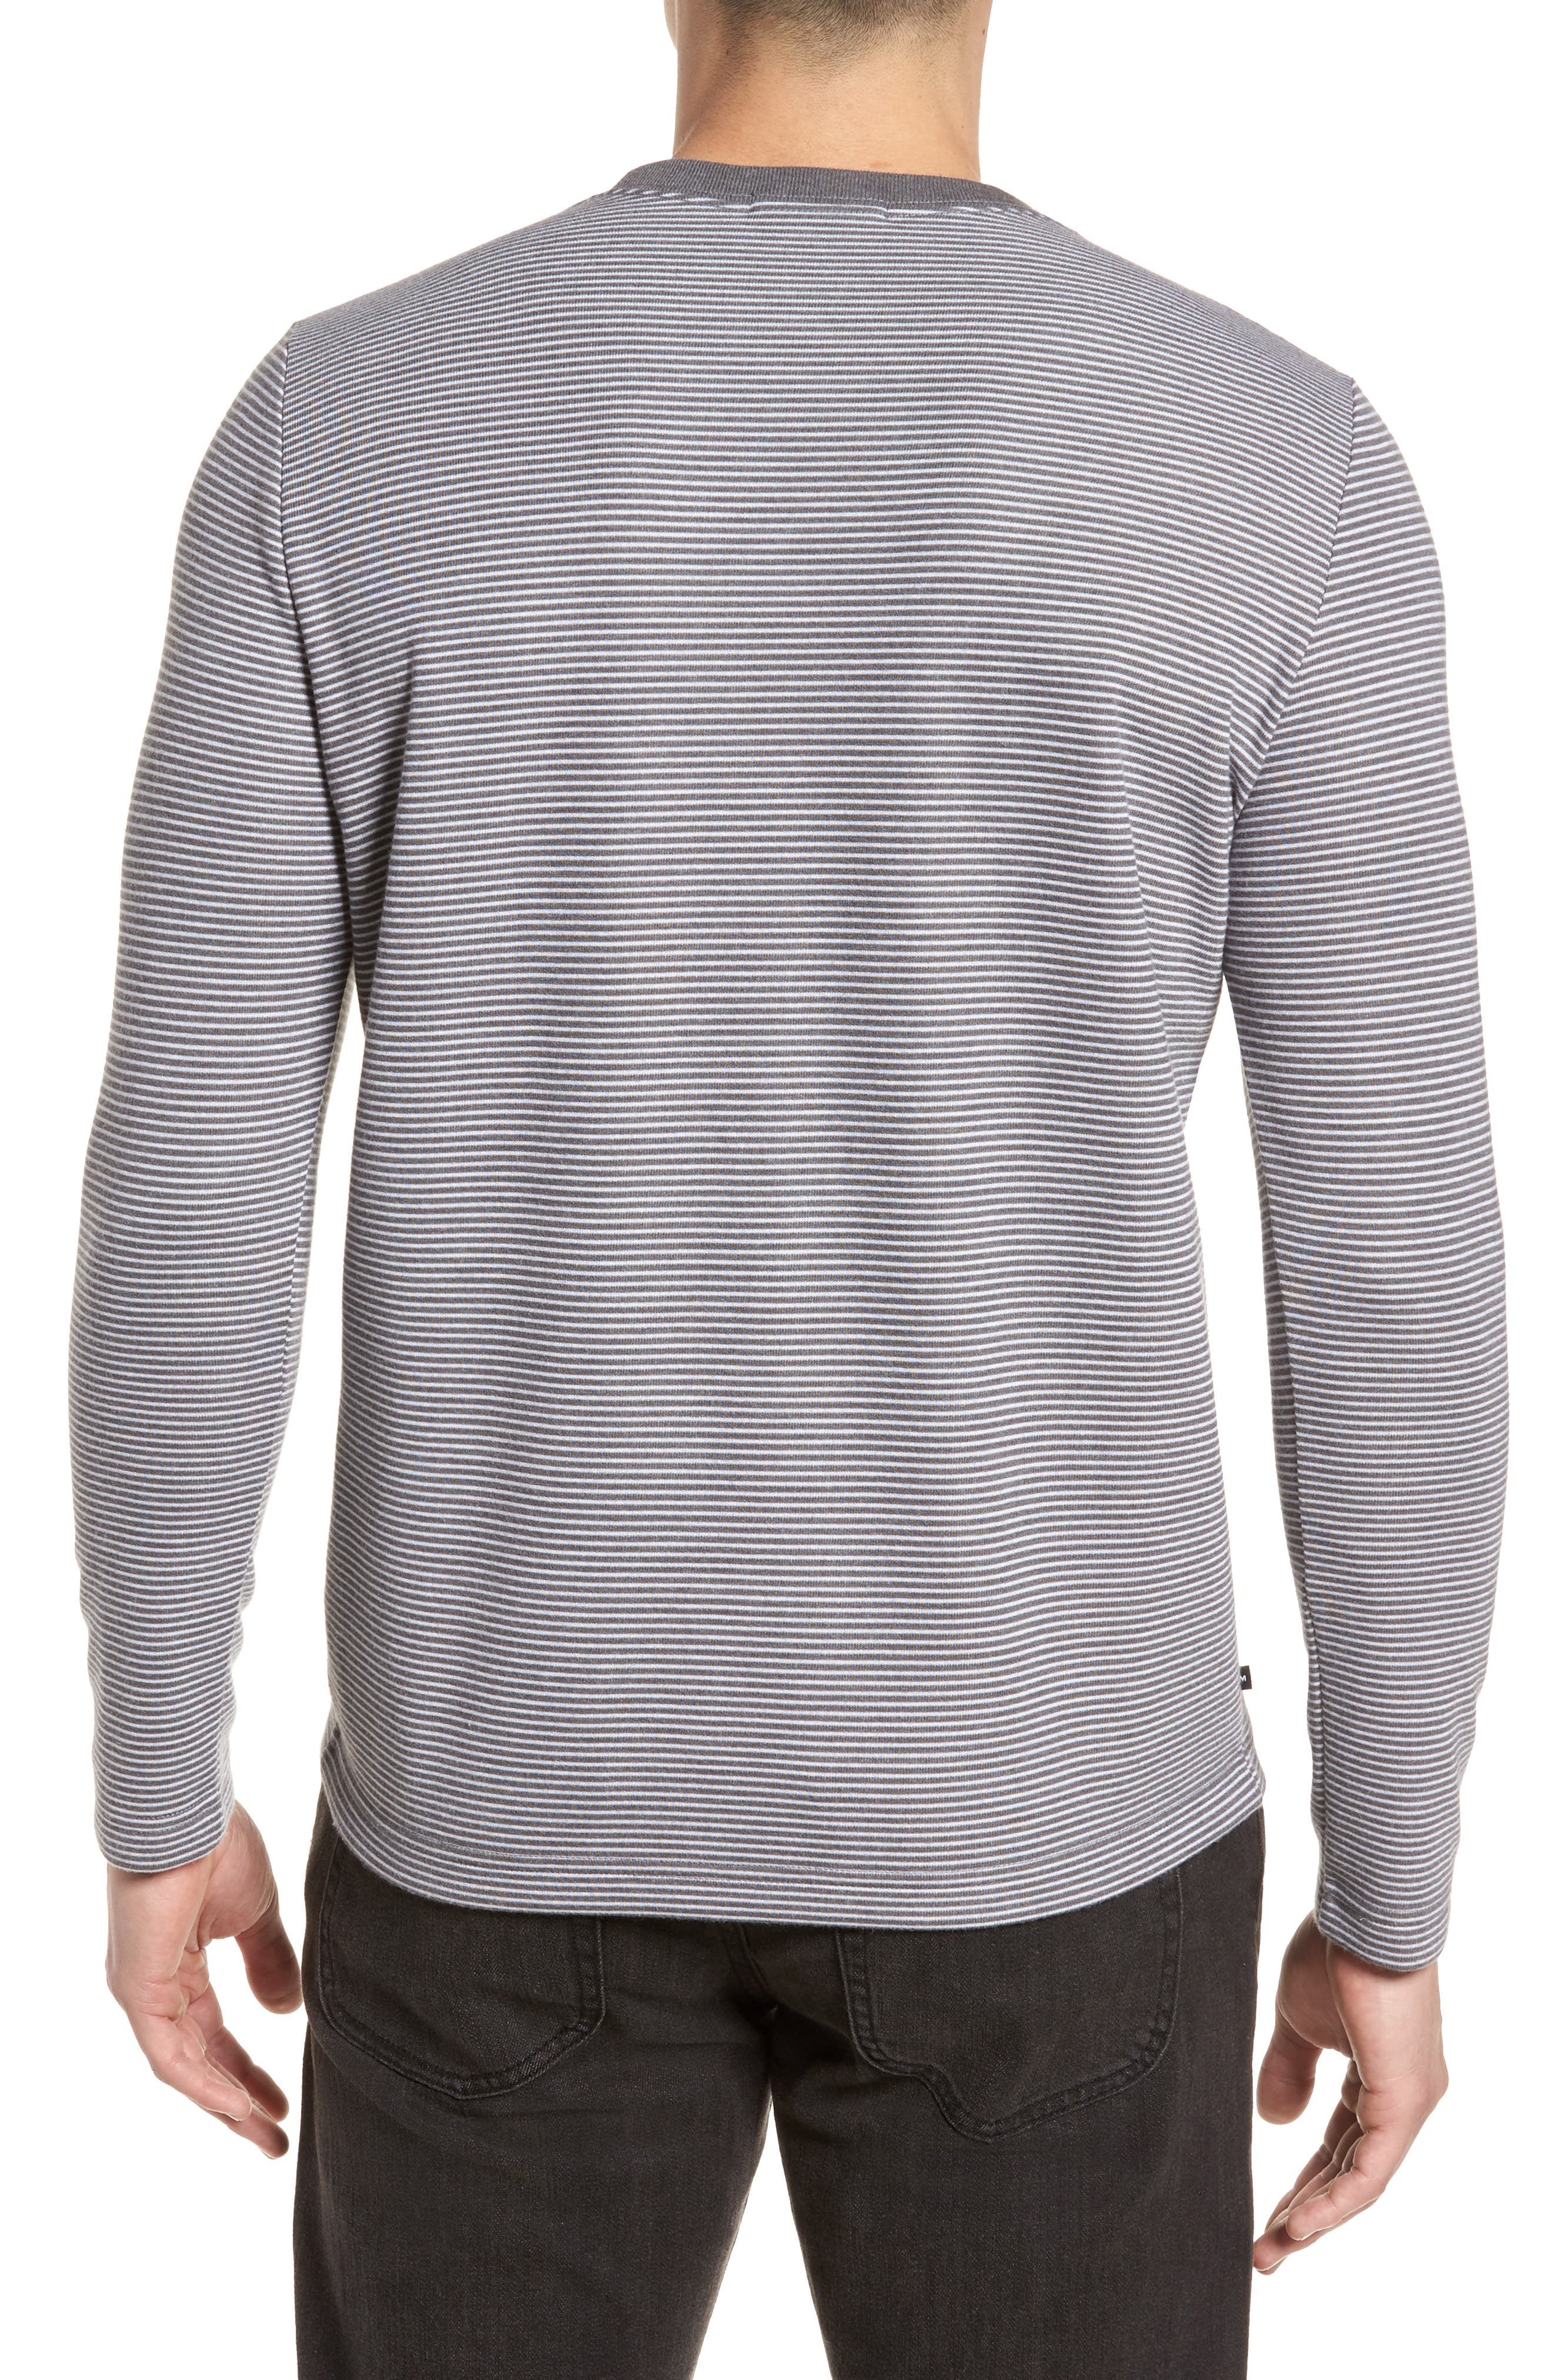 Outpost Stripe Pullover,                             Alternate thumbnail 2, color,                             Quiet Shade